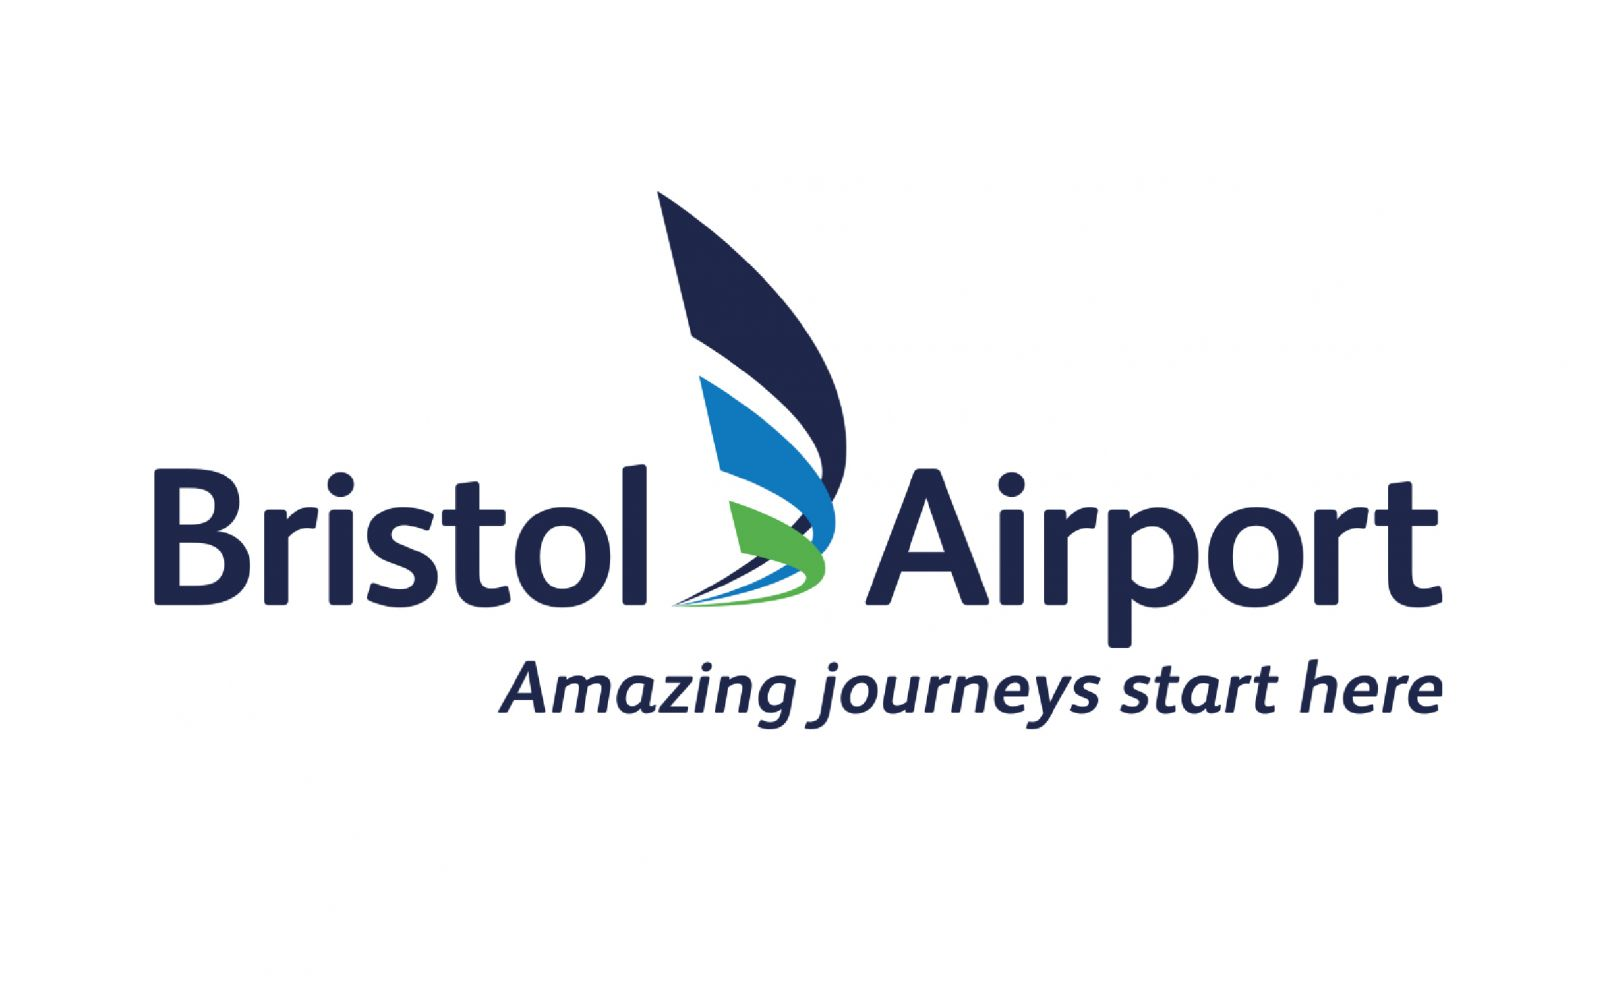 Bristol Airport's vote of confidence in ICTS UK & Ireland